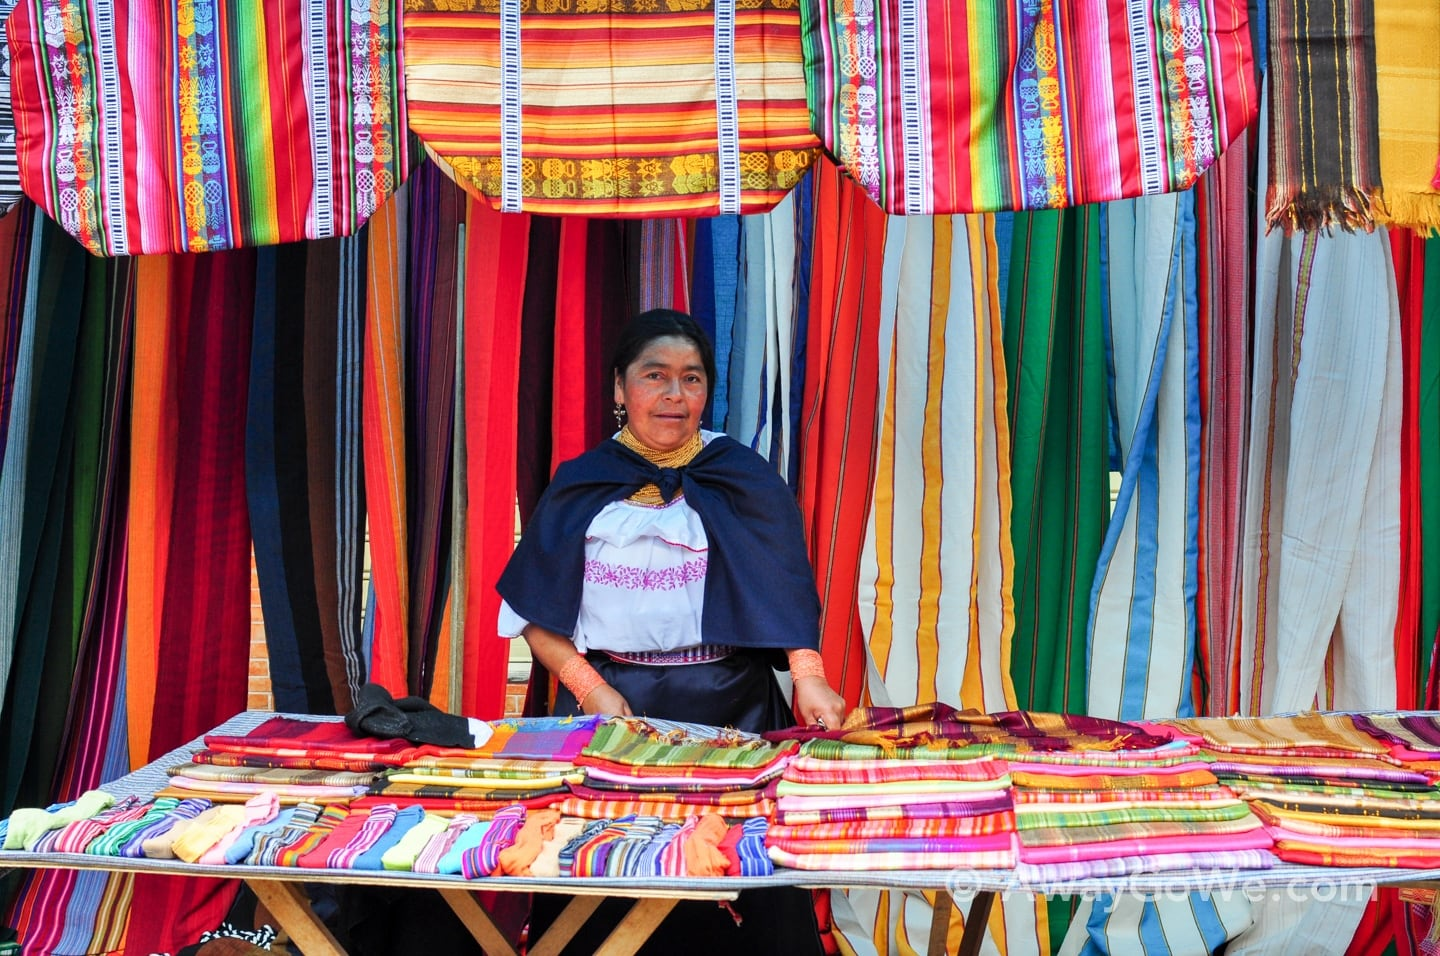 Andean woman and colorful textiles